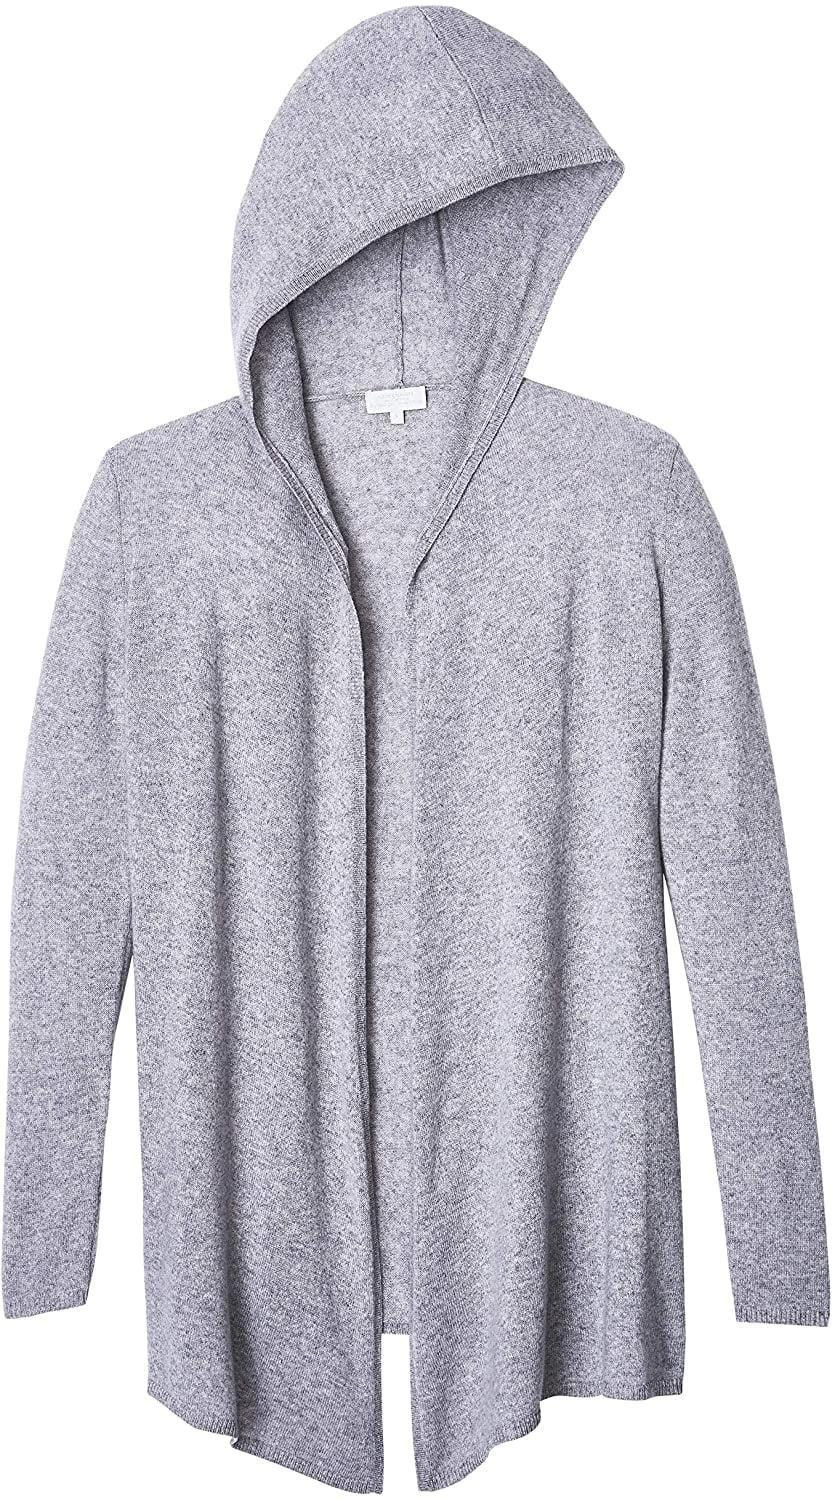 <p>The <span>Alpine Cashmere 100% Cashmere Casual Hoodie</span> ($264) is so cozy and perfect for layering.</p>